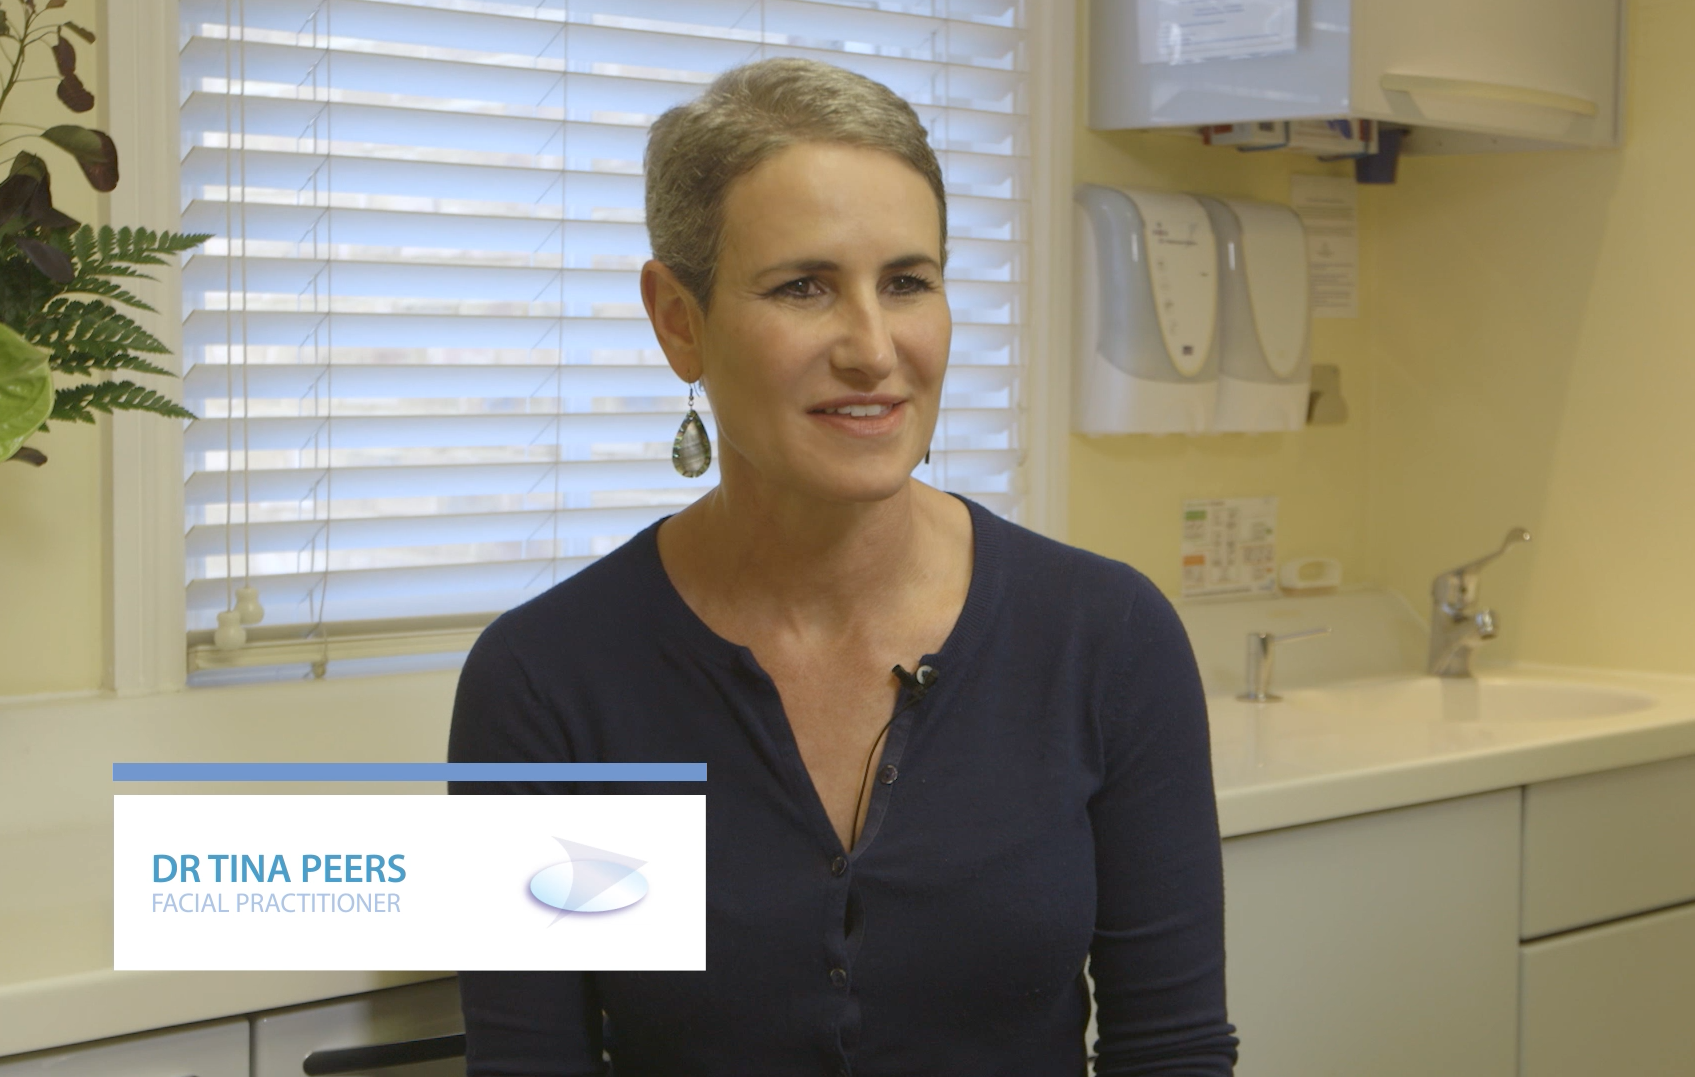 Dr Tina Peers talks about facial rejuvenation treatments at Elmsleigh House